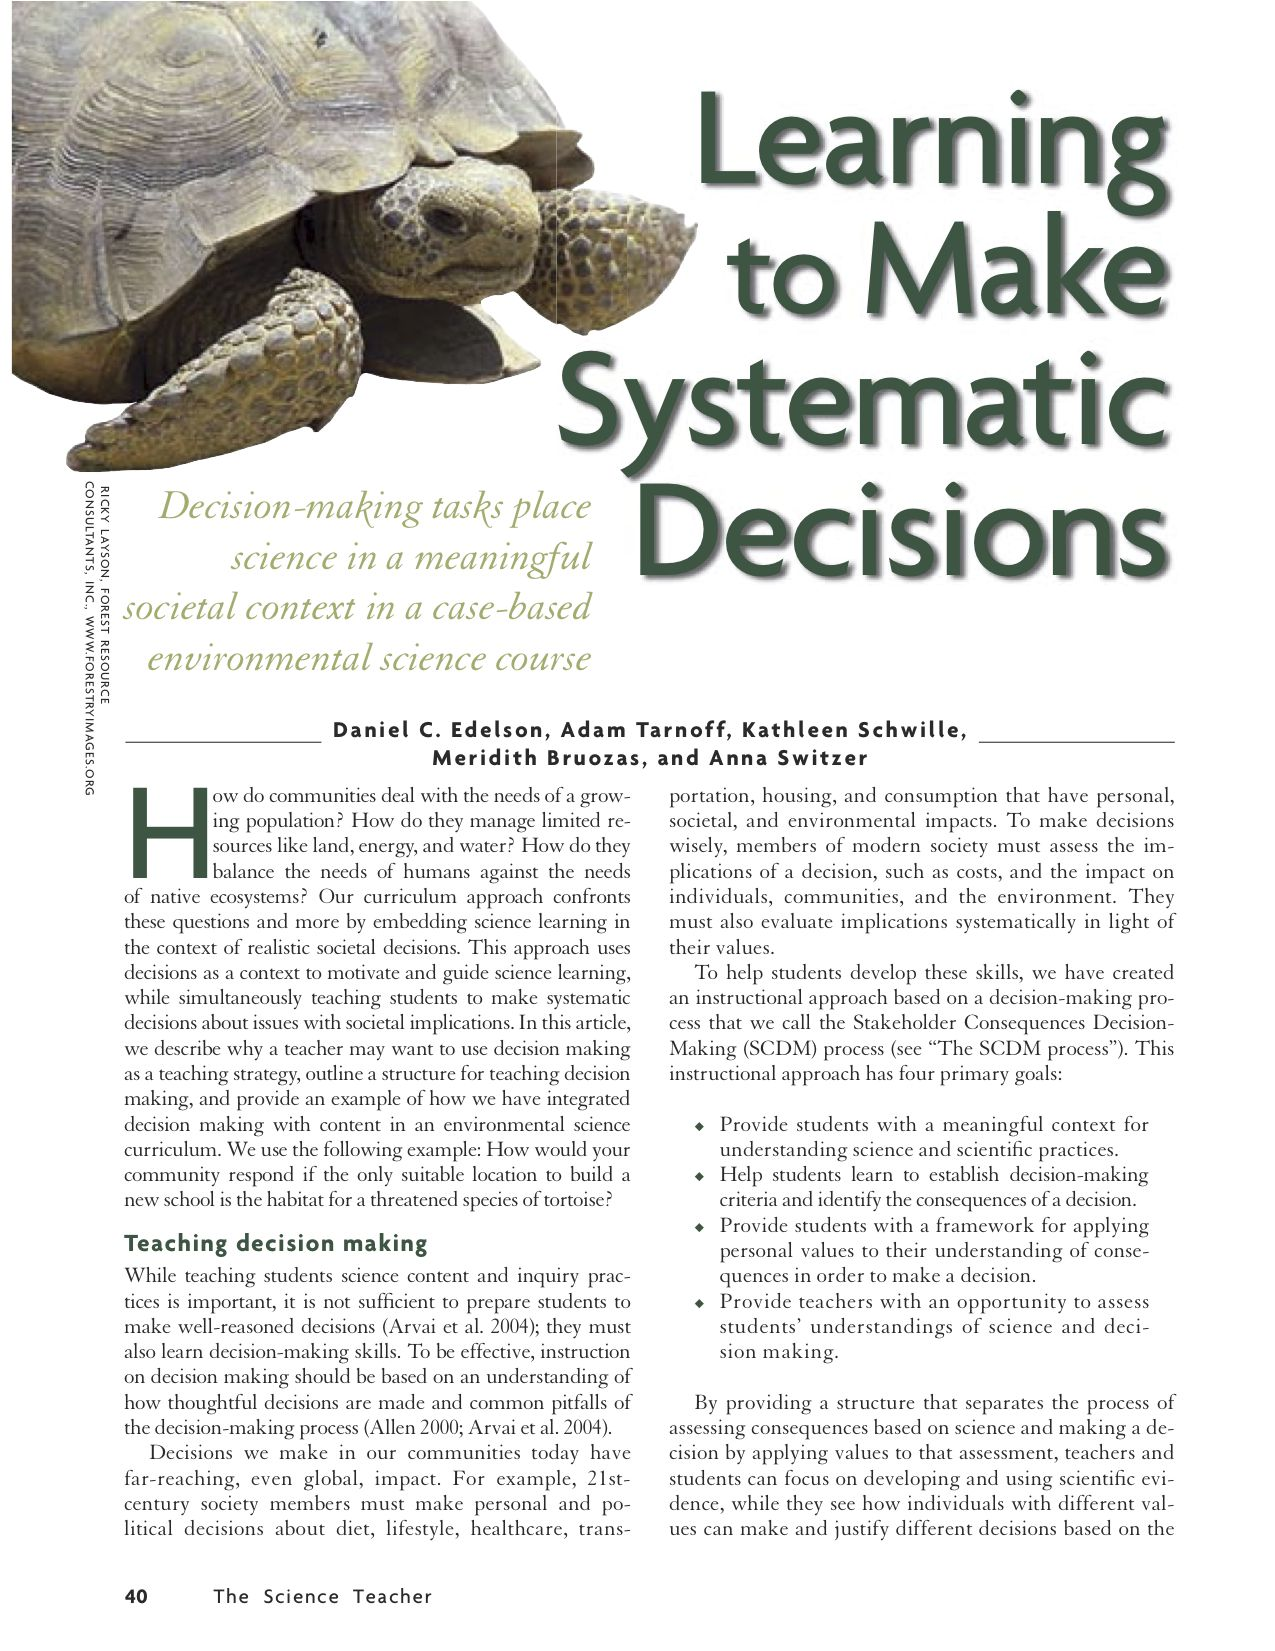 Learning to Make Systematic Decisions | National Geographic